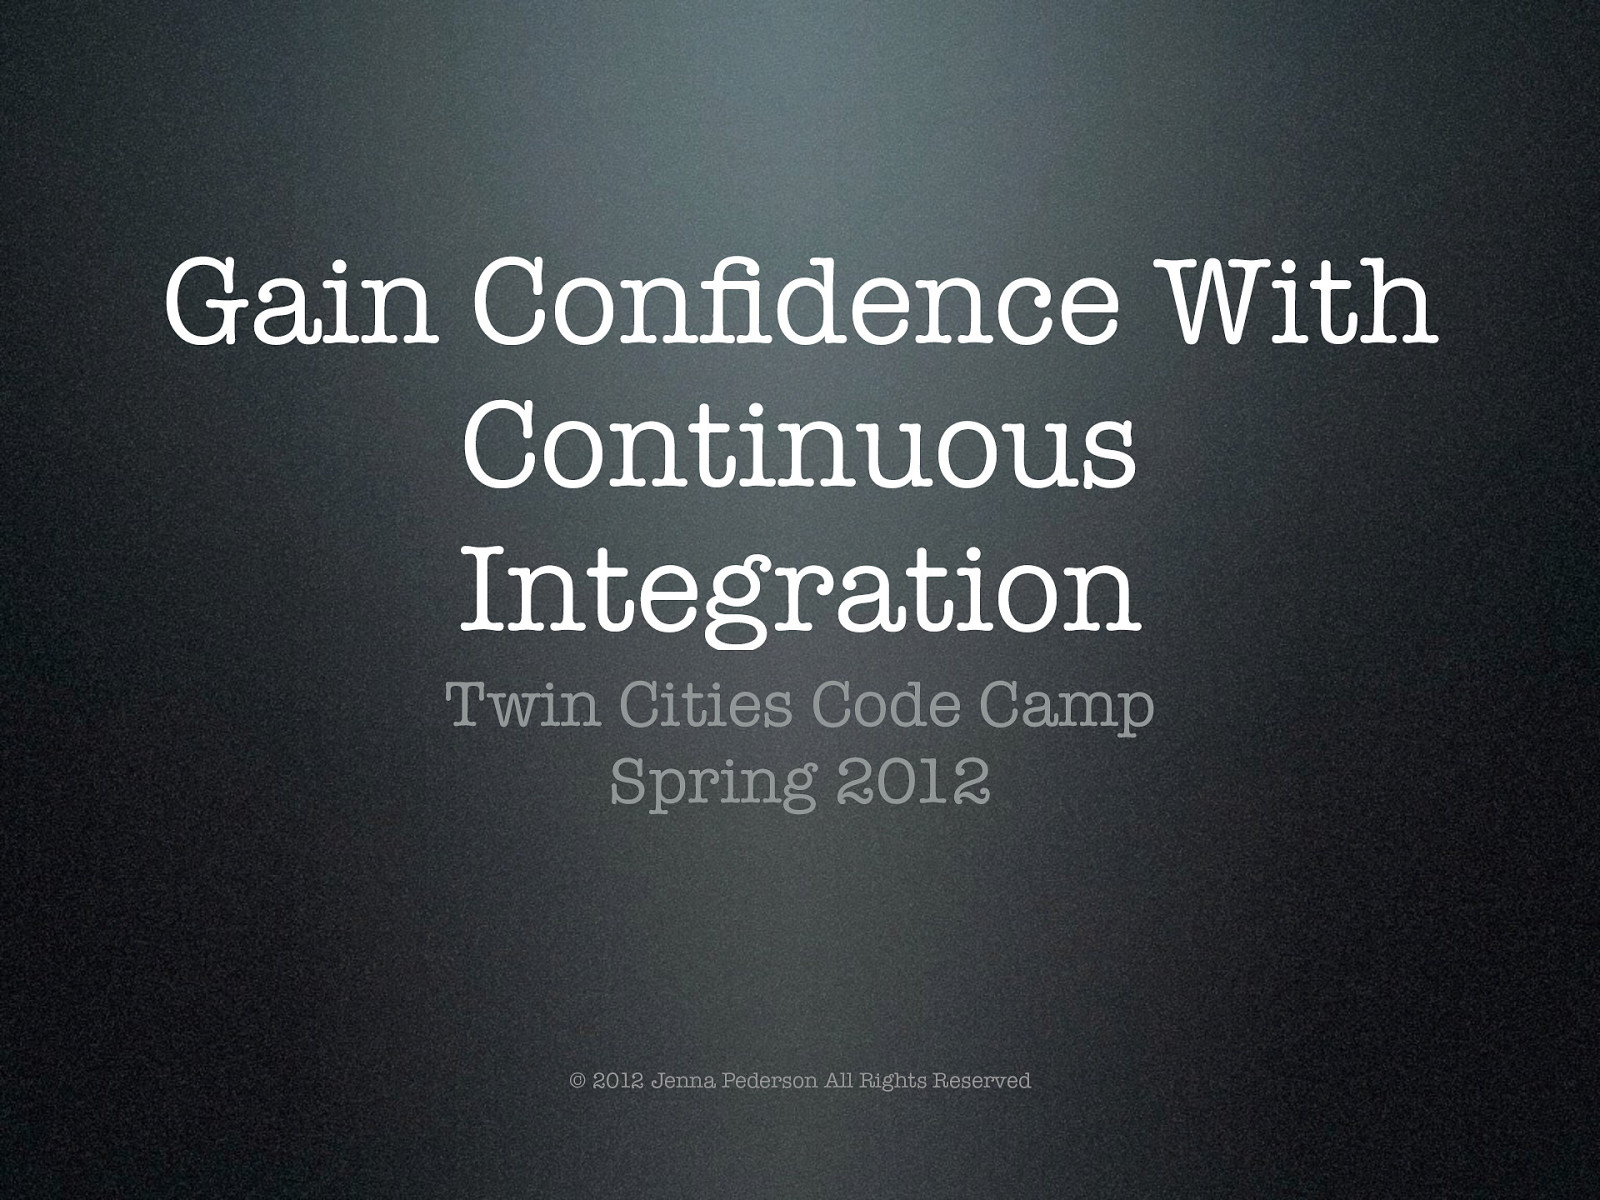 Gain Confidence with Continuous Integration